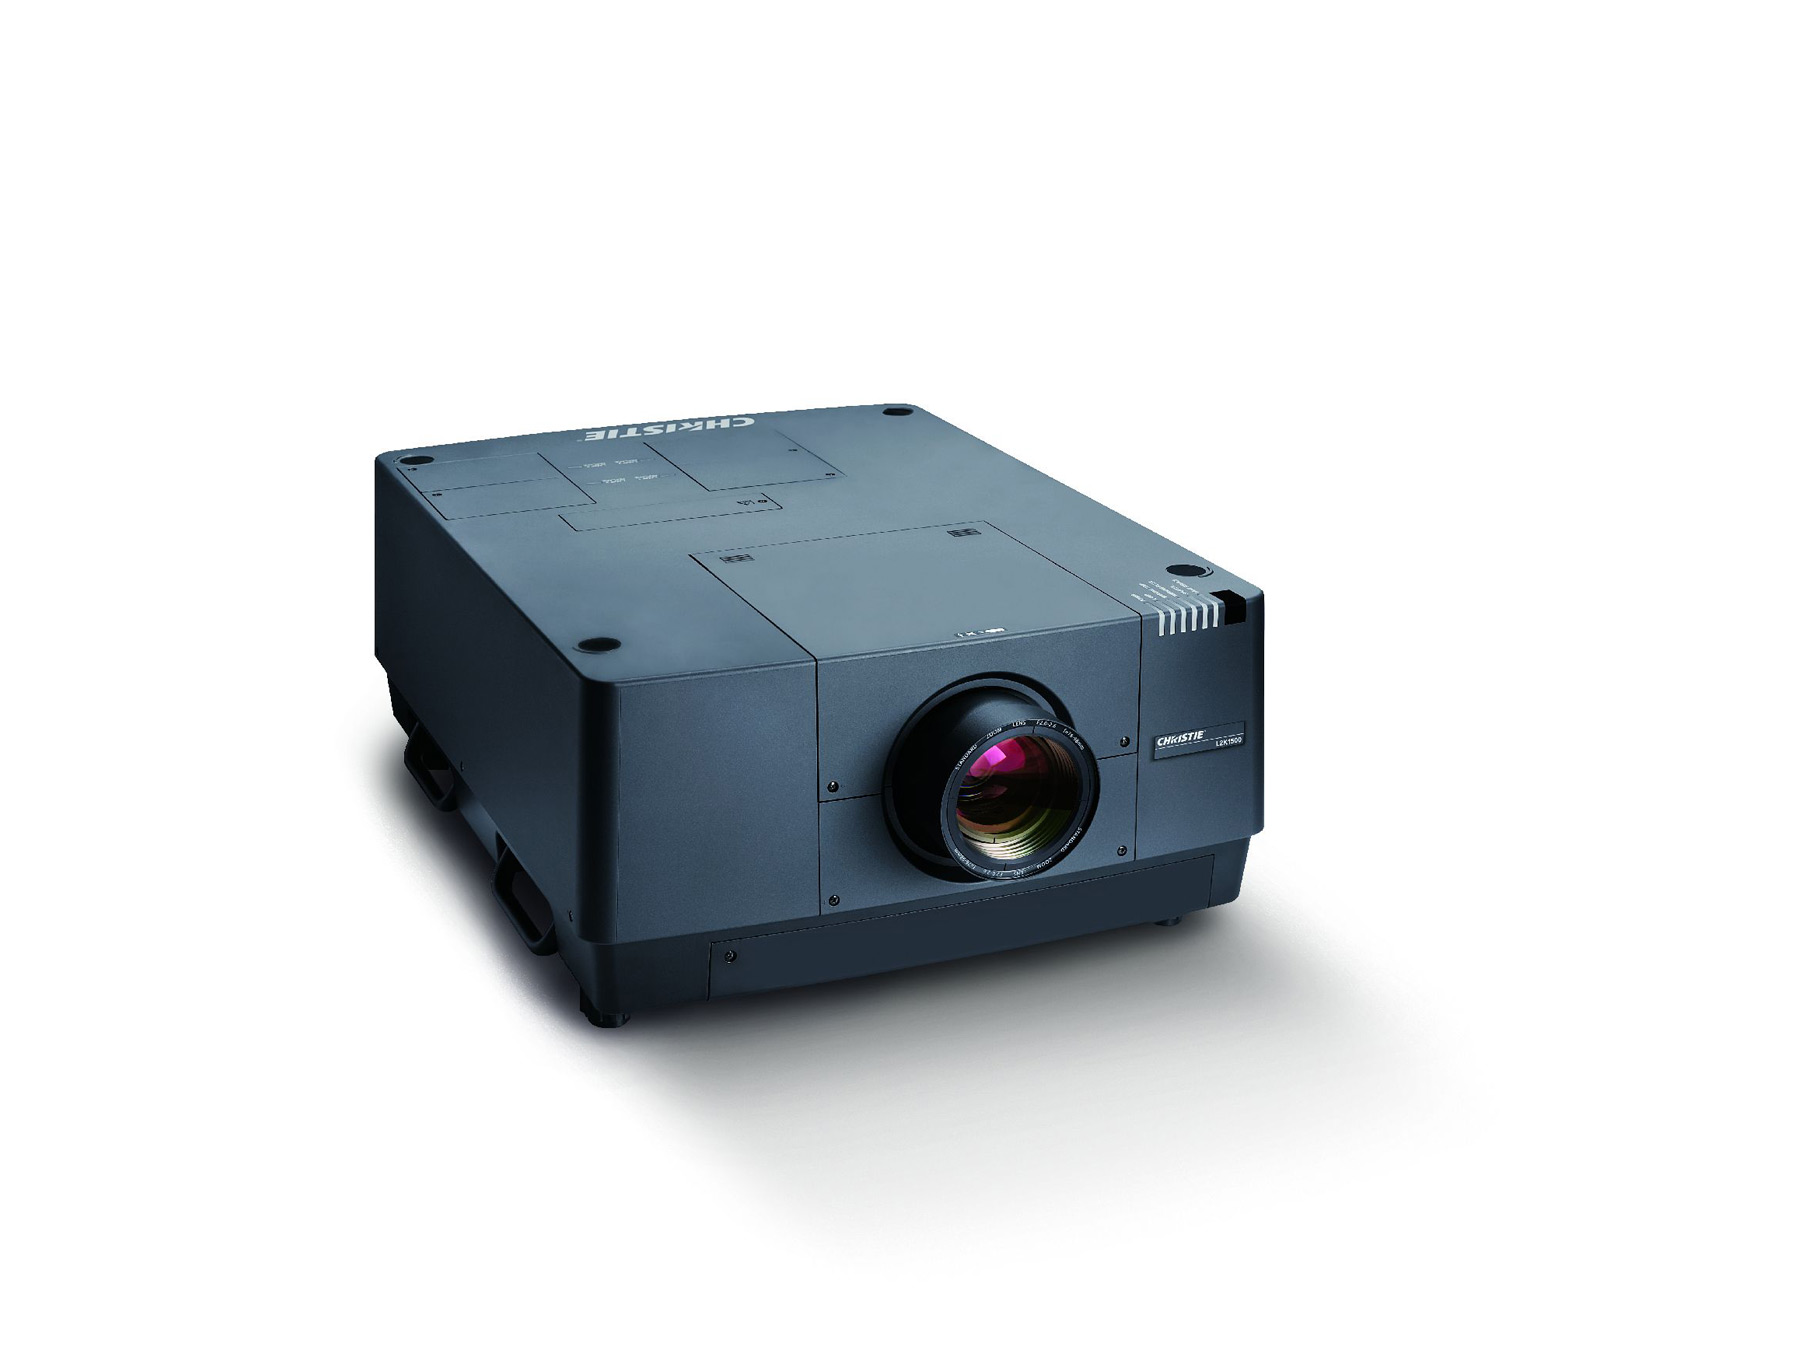 /globalassets/.catalog/products/images/christie-l2k1500/gallery/christie-l2k-1500-3-lcd-digital-projector-image-18.jpg